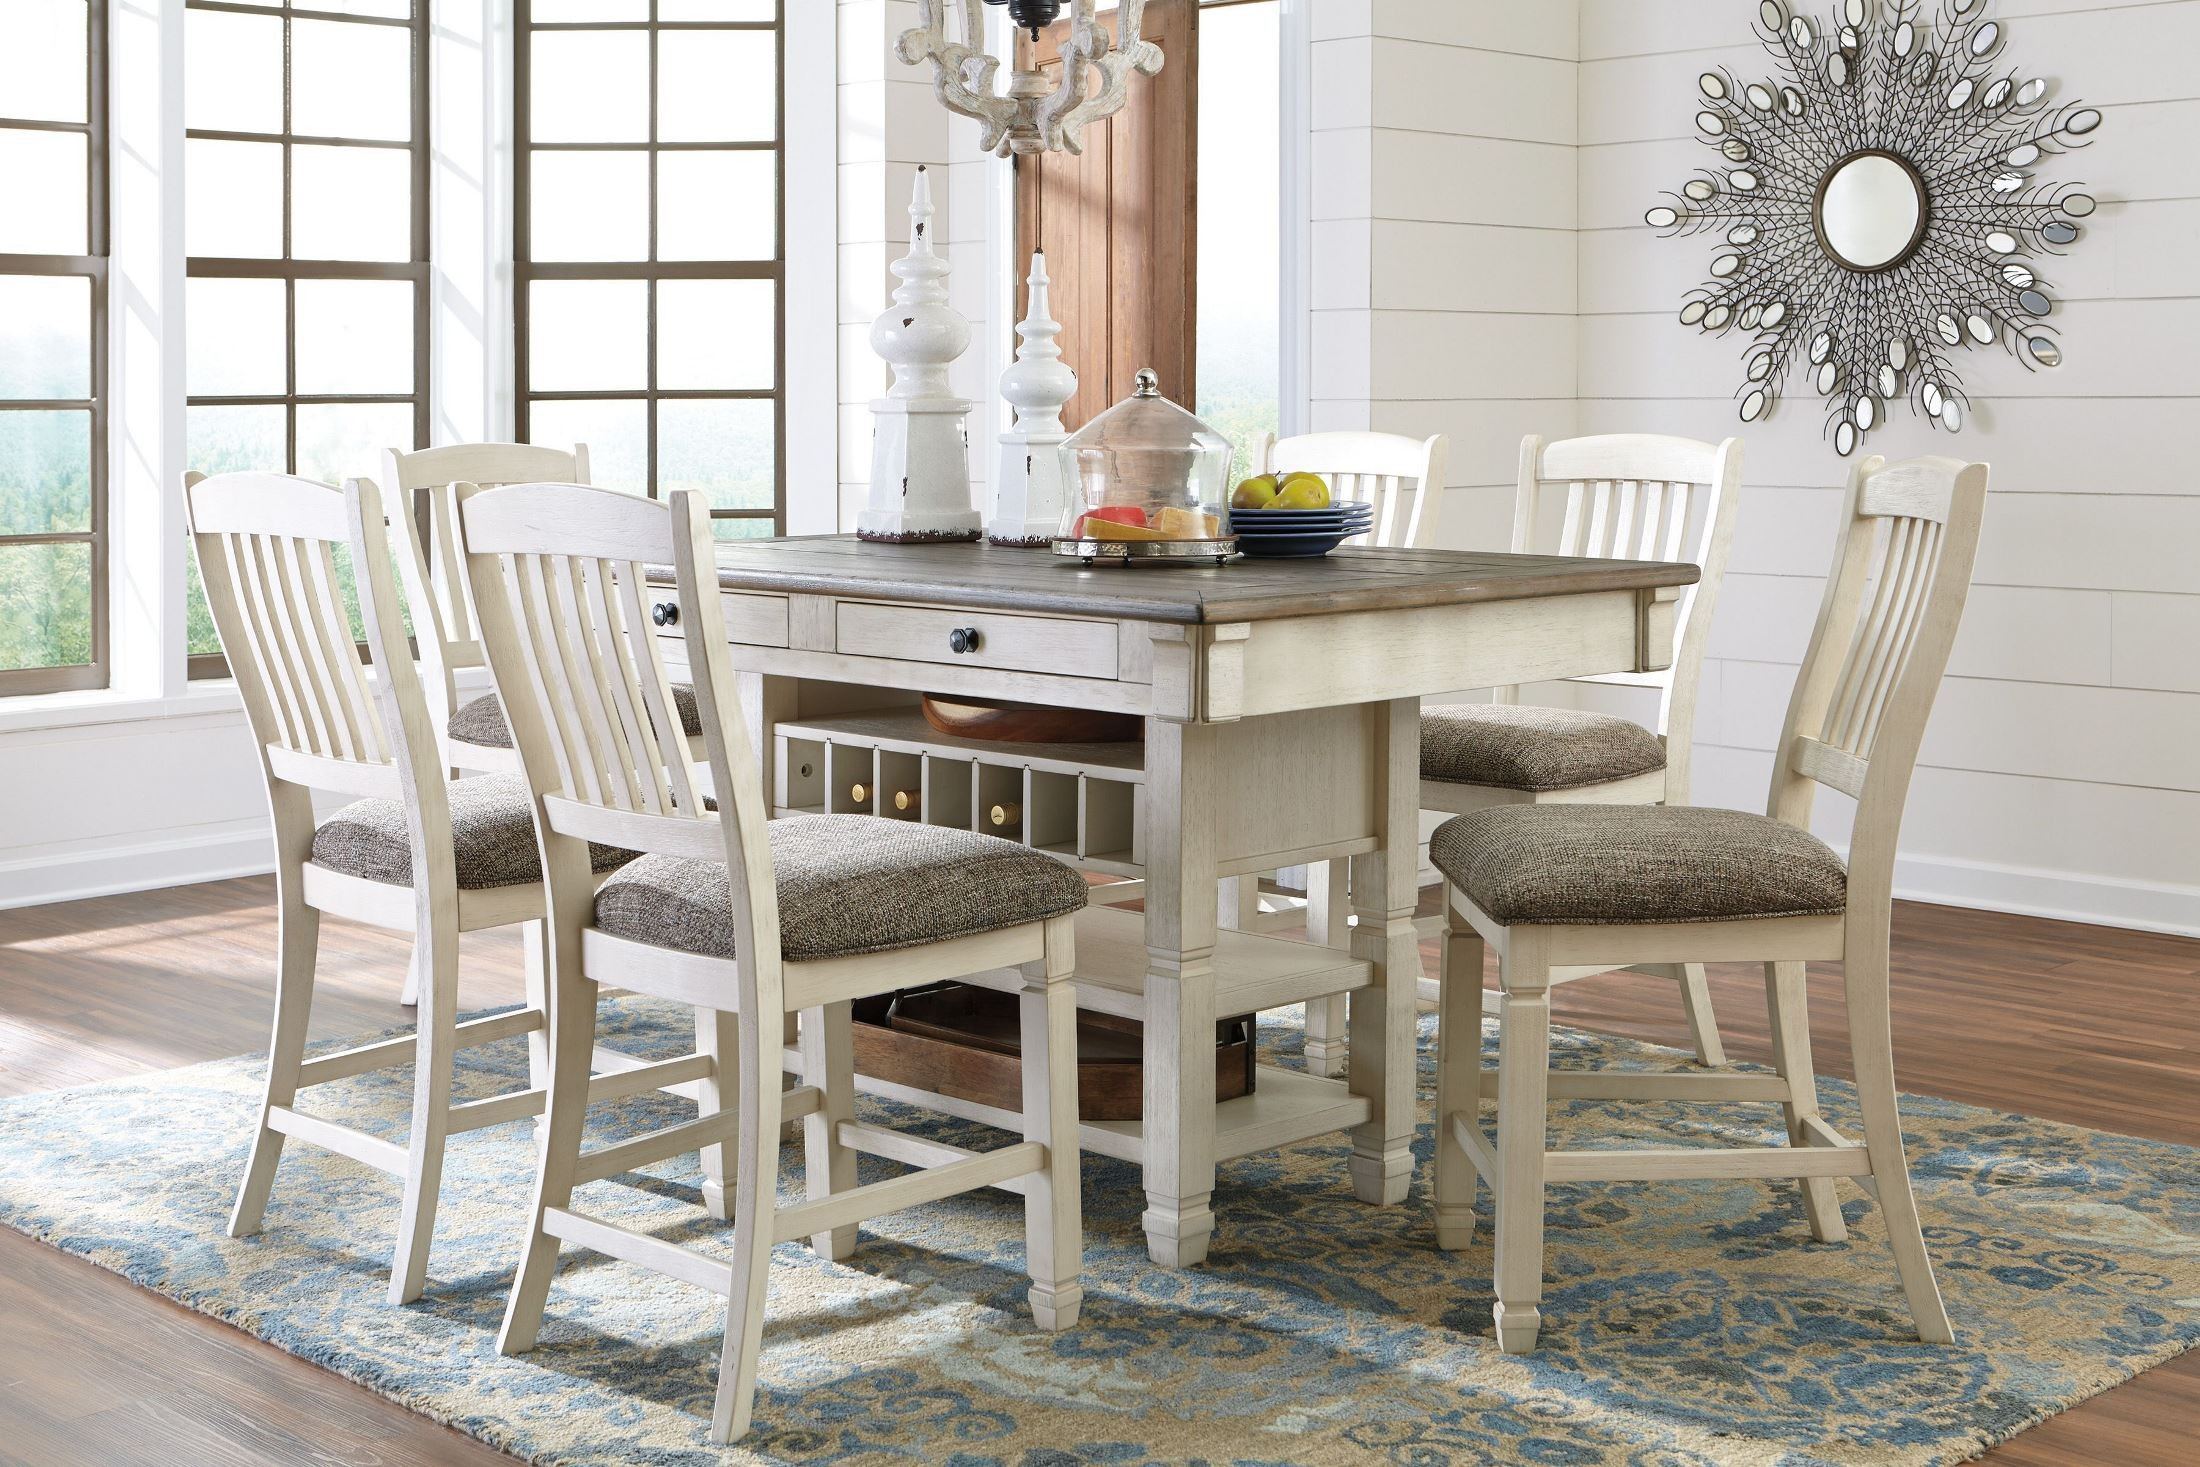 Bolanburg White And Gray Rectangular Counter Height Dining Intended For Best And Newest Abby Bar Height Dining Tables (View 15 of 15)